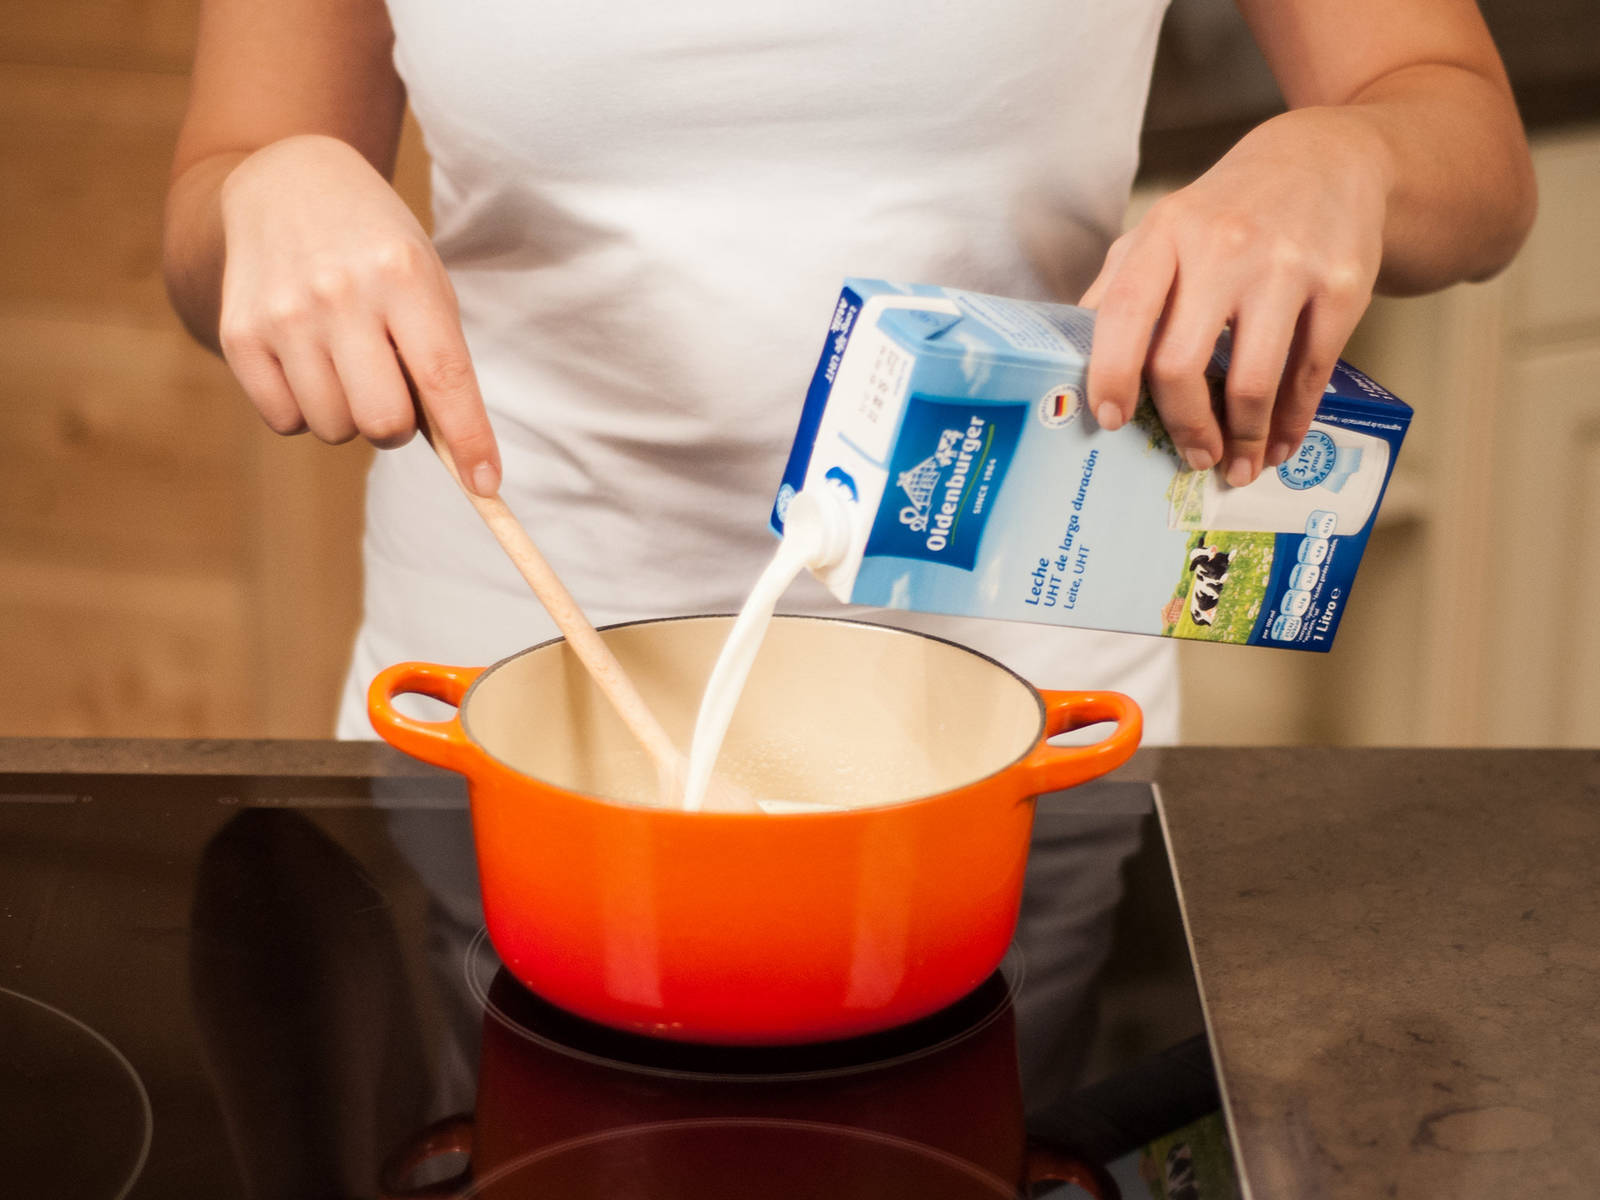 Preheat oven to 110°C/230°F. Add milk, heavy cream, a third of the sugar, the seeds of one vanilla bean, and a small pinch of salt to a saucepan. Bring mixture to a slight boil.